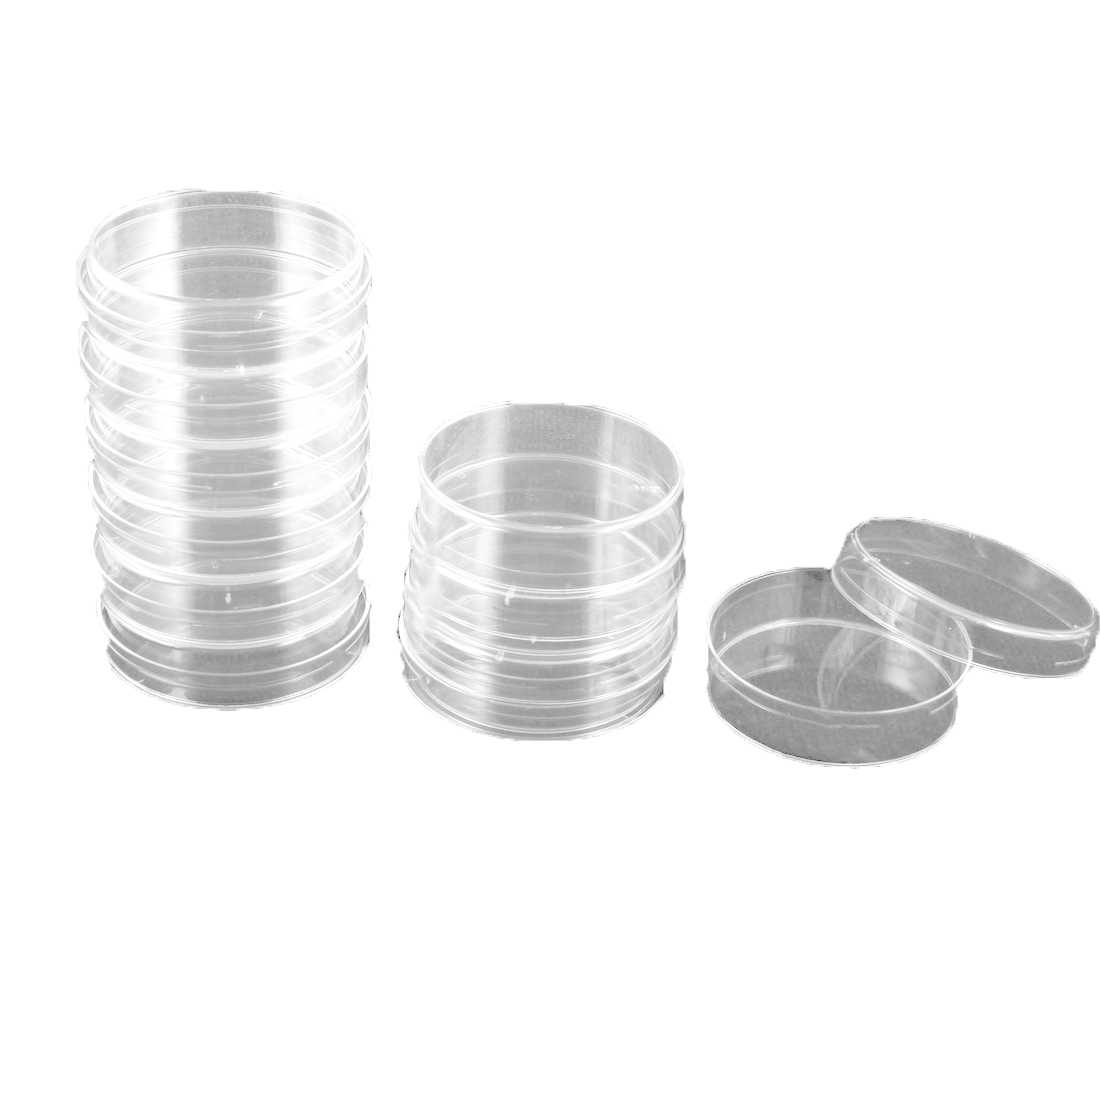 10 Pcs 60mm Diameter Cylinder Shape Clear Plastic Cell Culture Dish